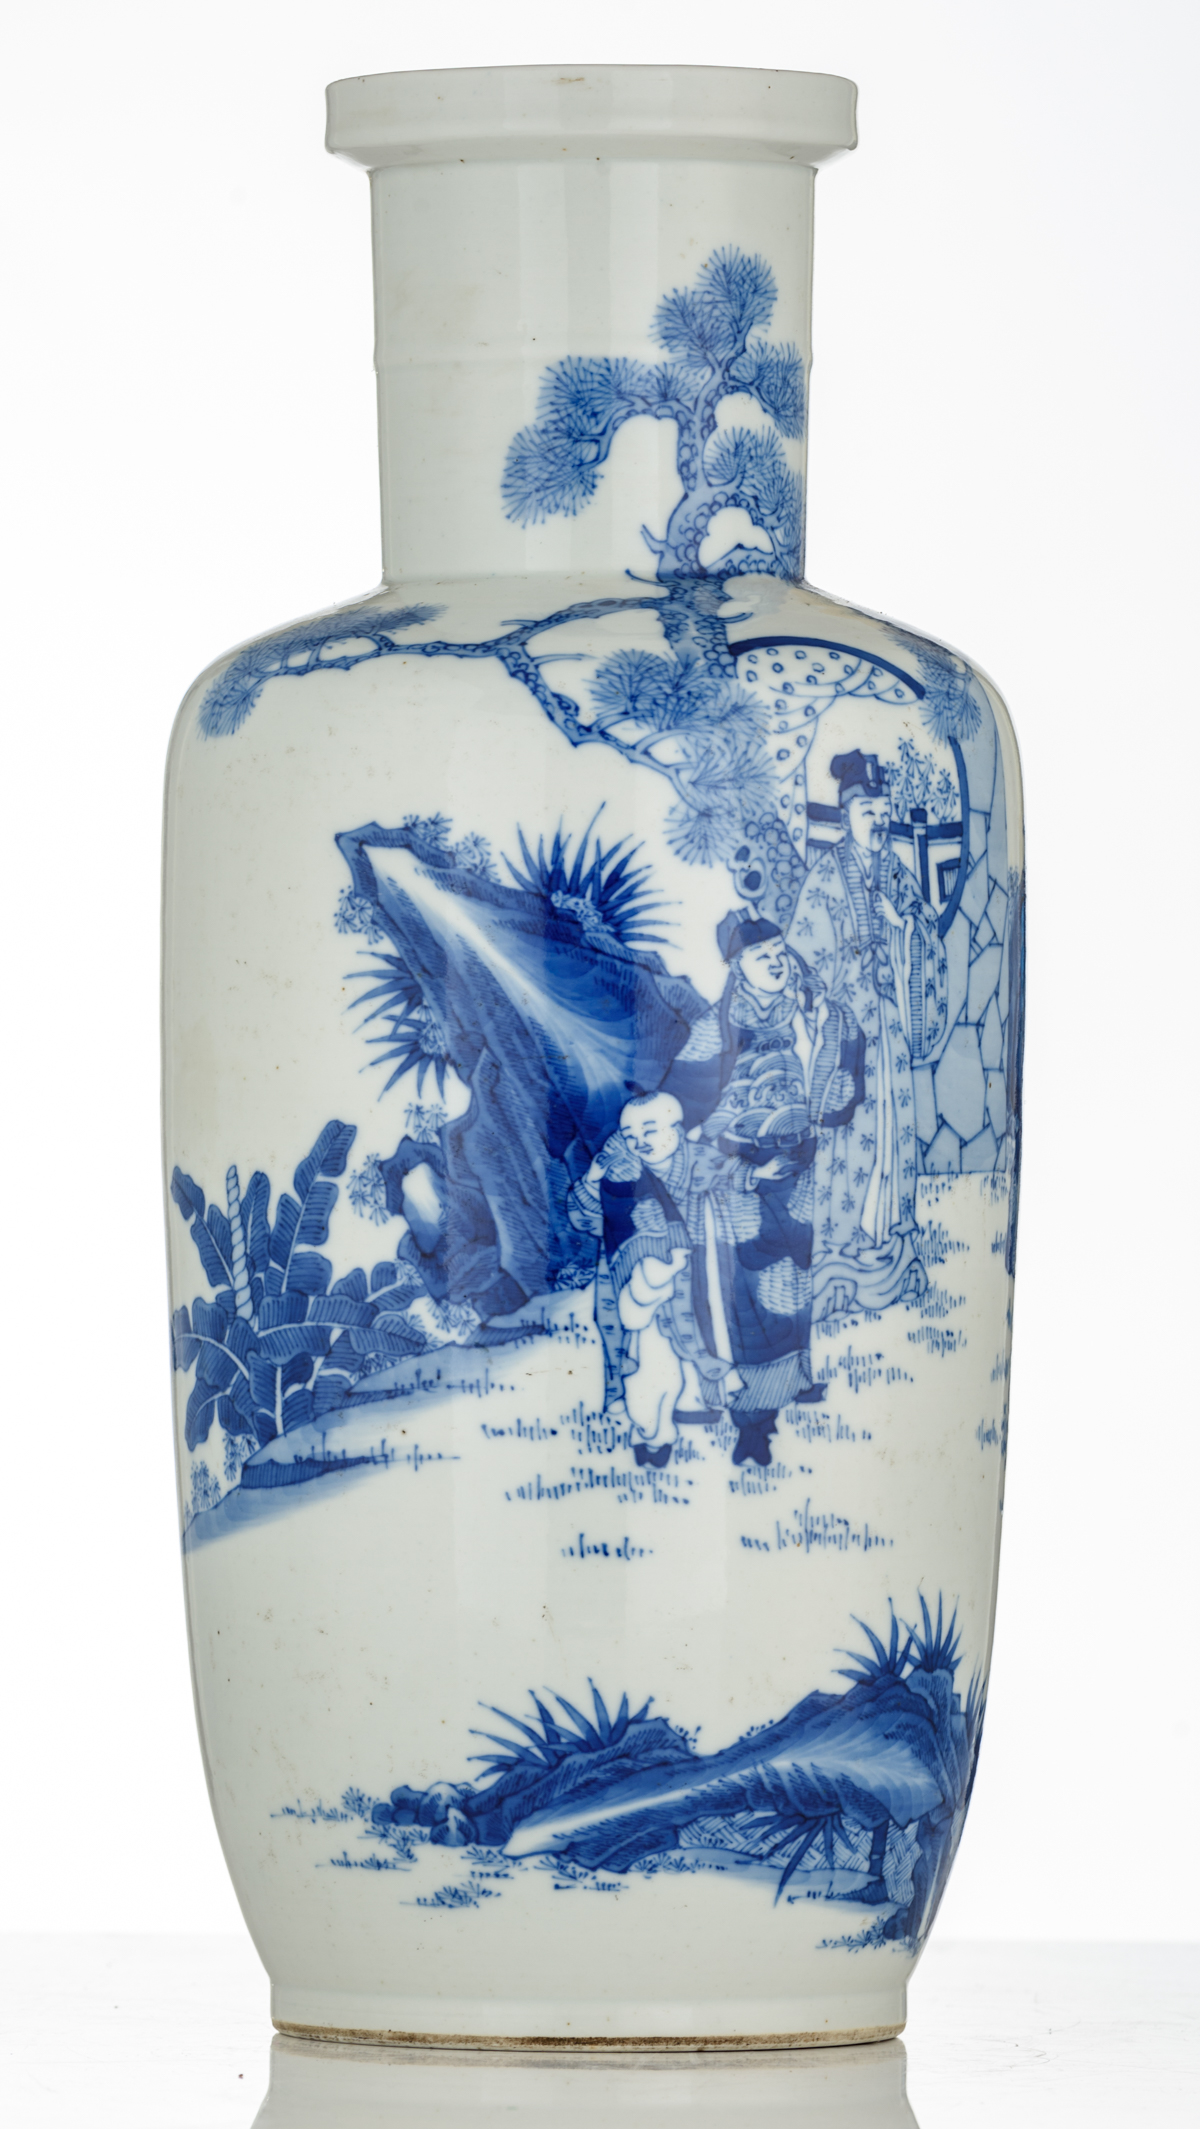 Lot 49 - A Chinese blue and white rouleau vase decorated with a scene depicting 'the visit of a friend', H